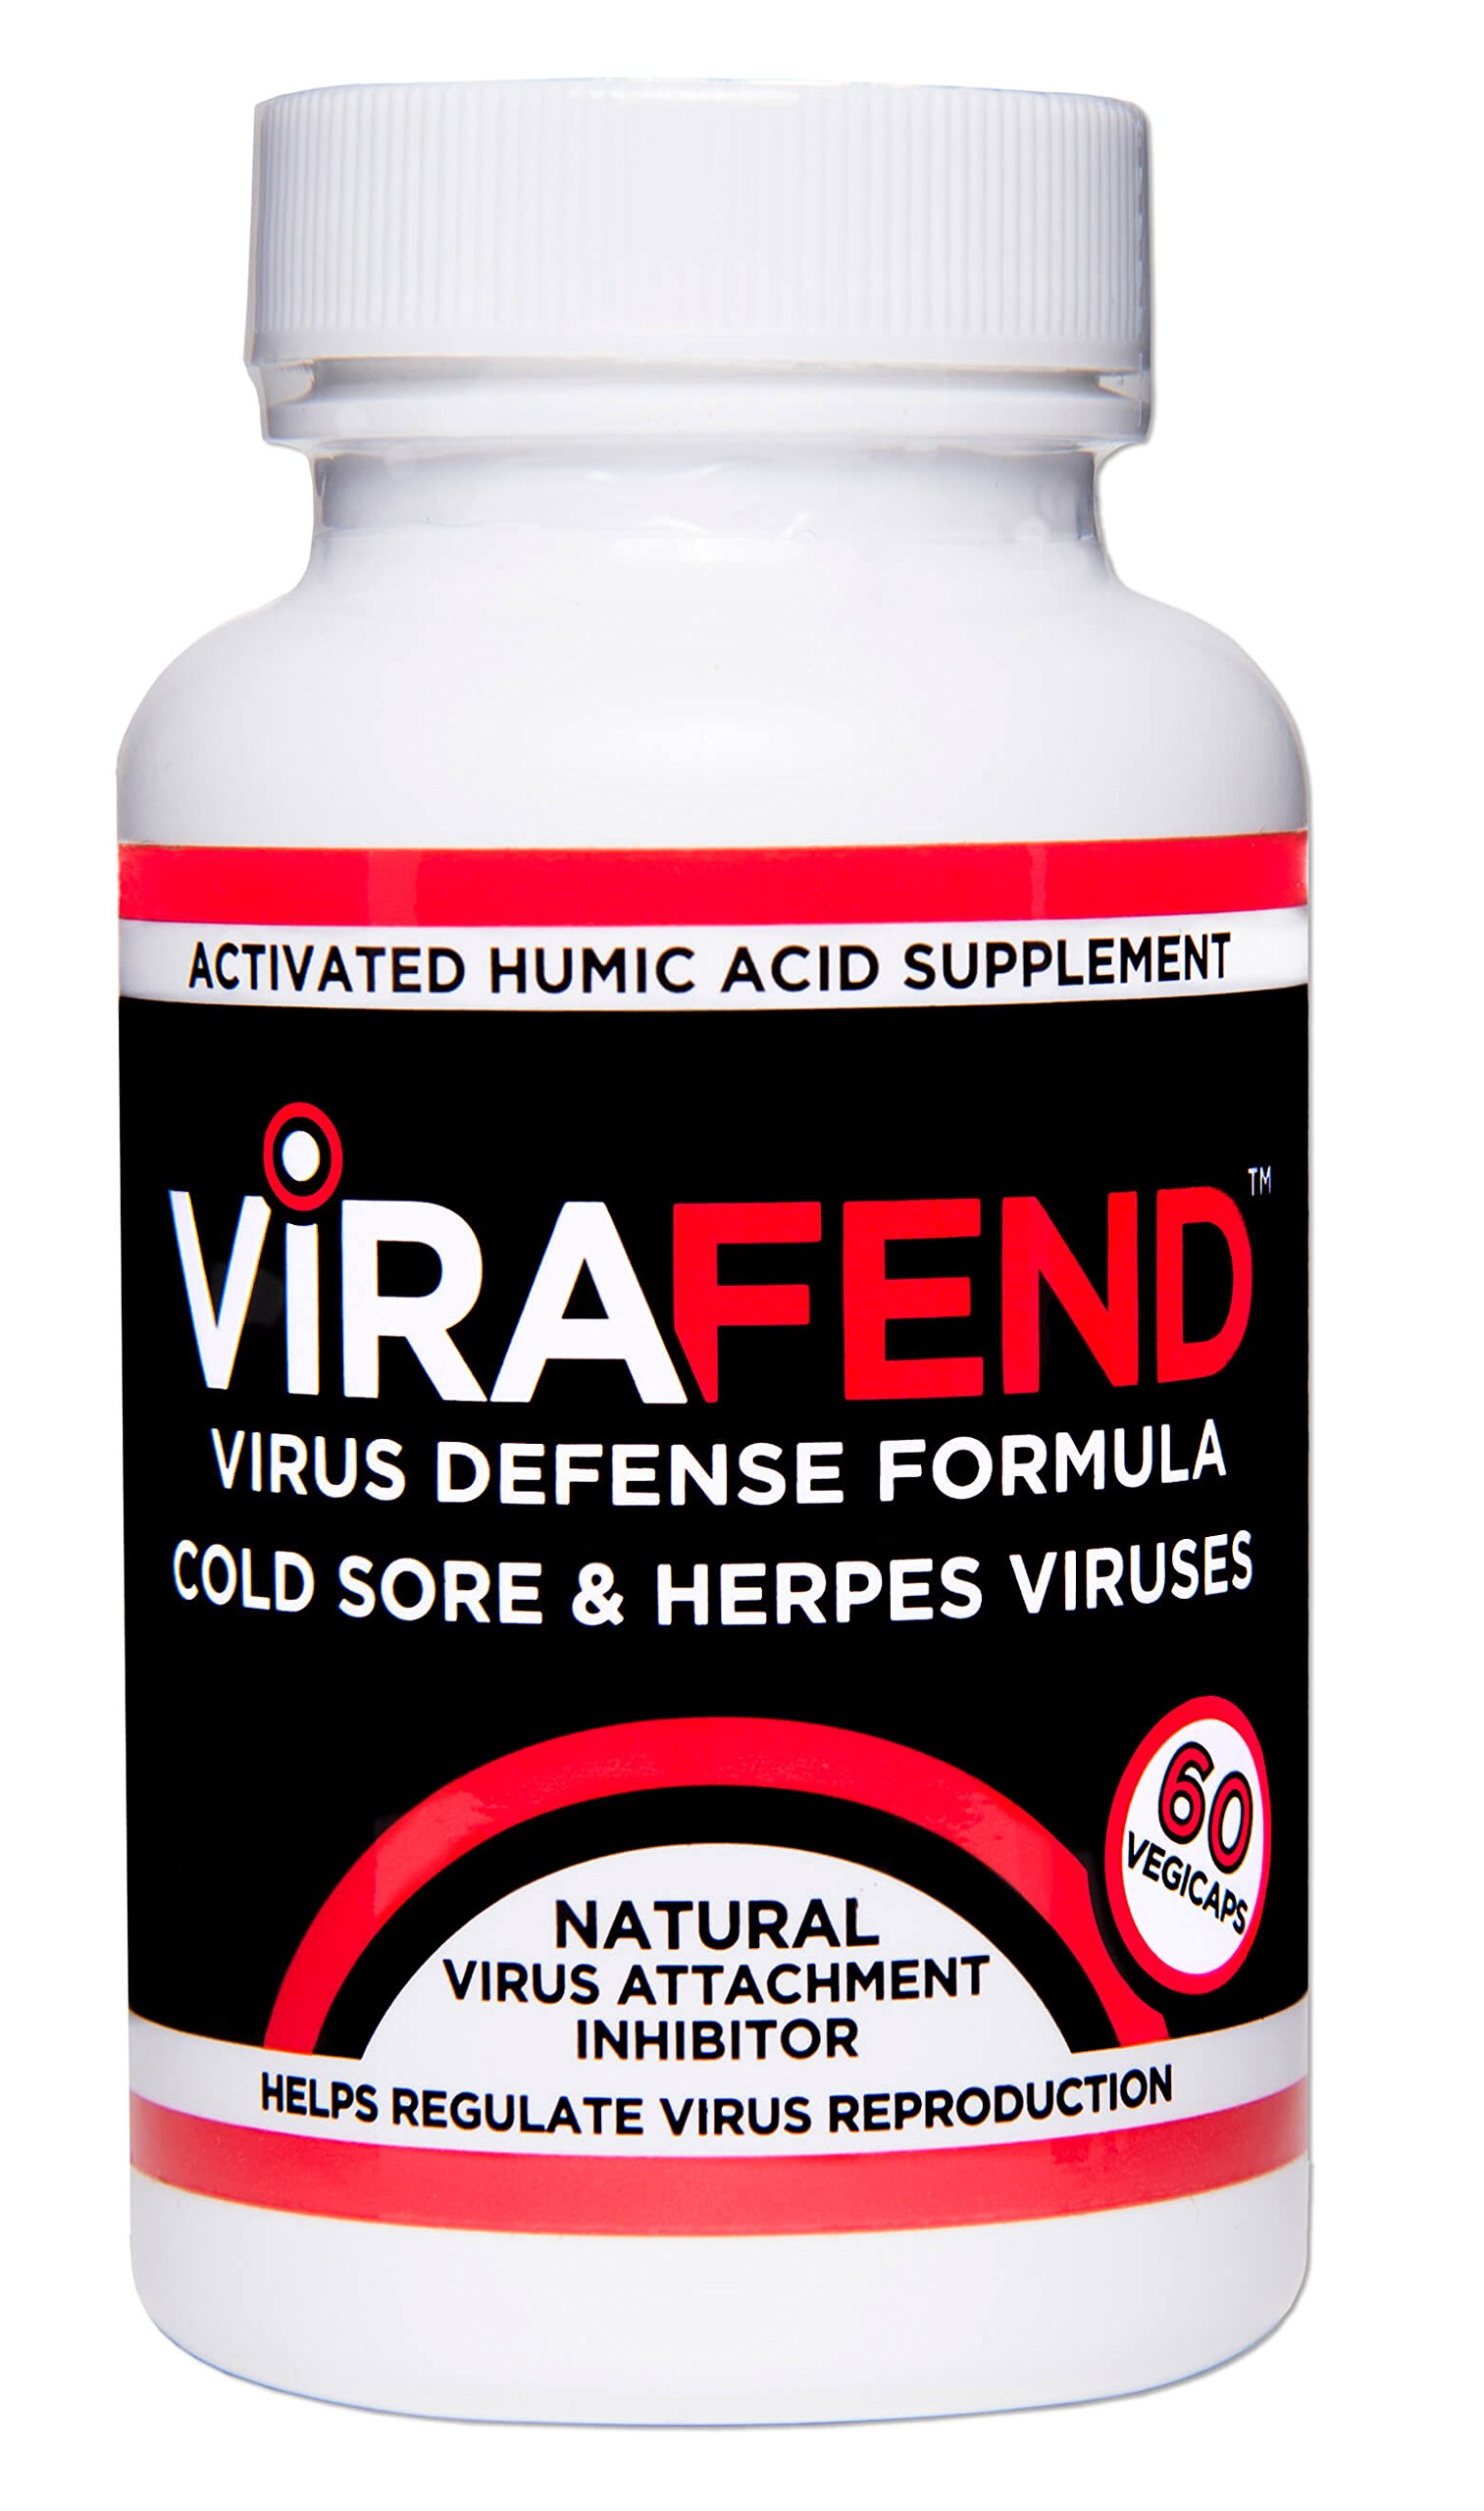 ViraFend + L-Lysine, Best Cold Sores Herpes Virus Defense Supplement, Proactive Alternative to Cold Sore Treatments, Regulates Reproduction of Cold Sores Herpes Viruses, Made in USA, 60 Capsules